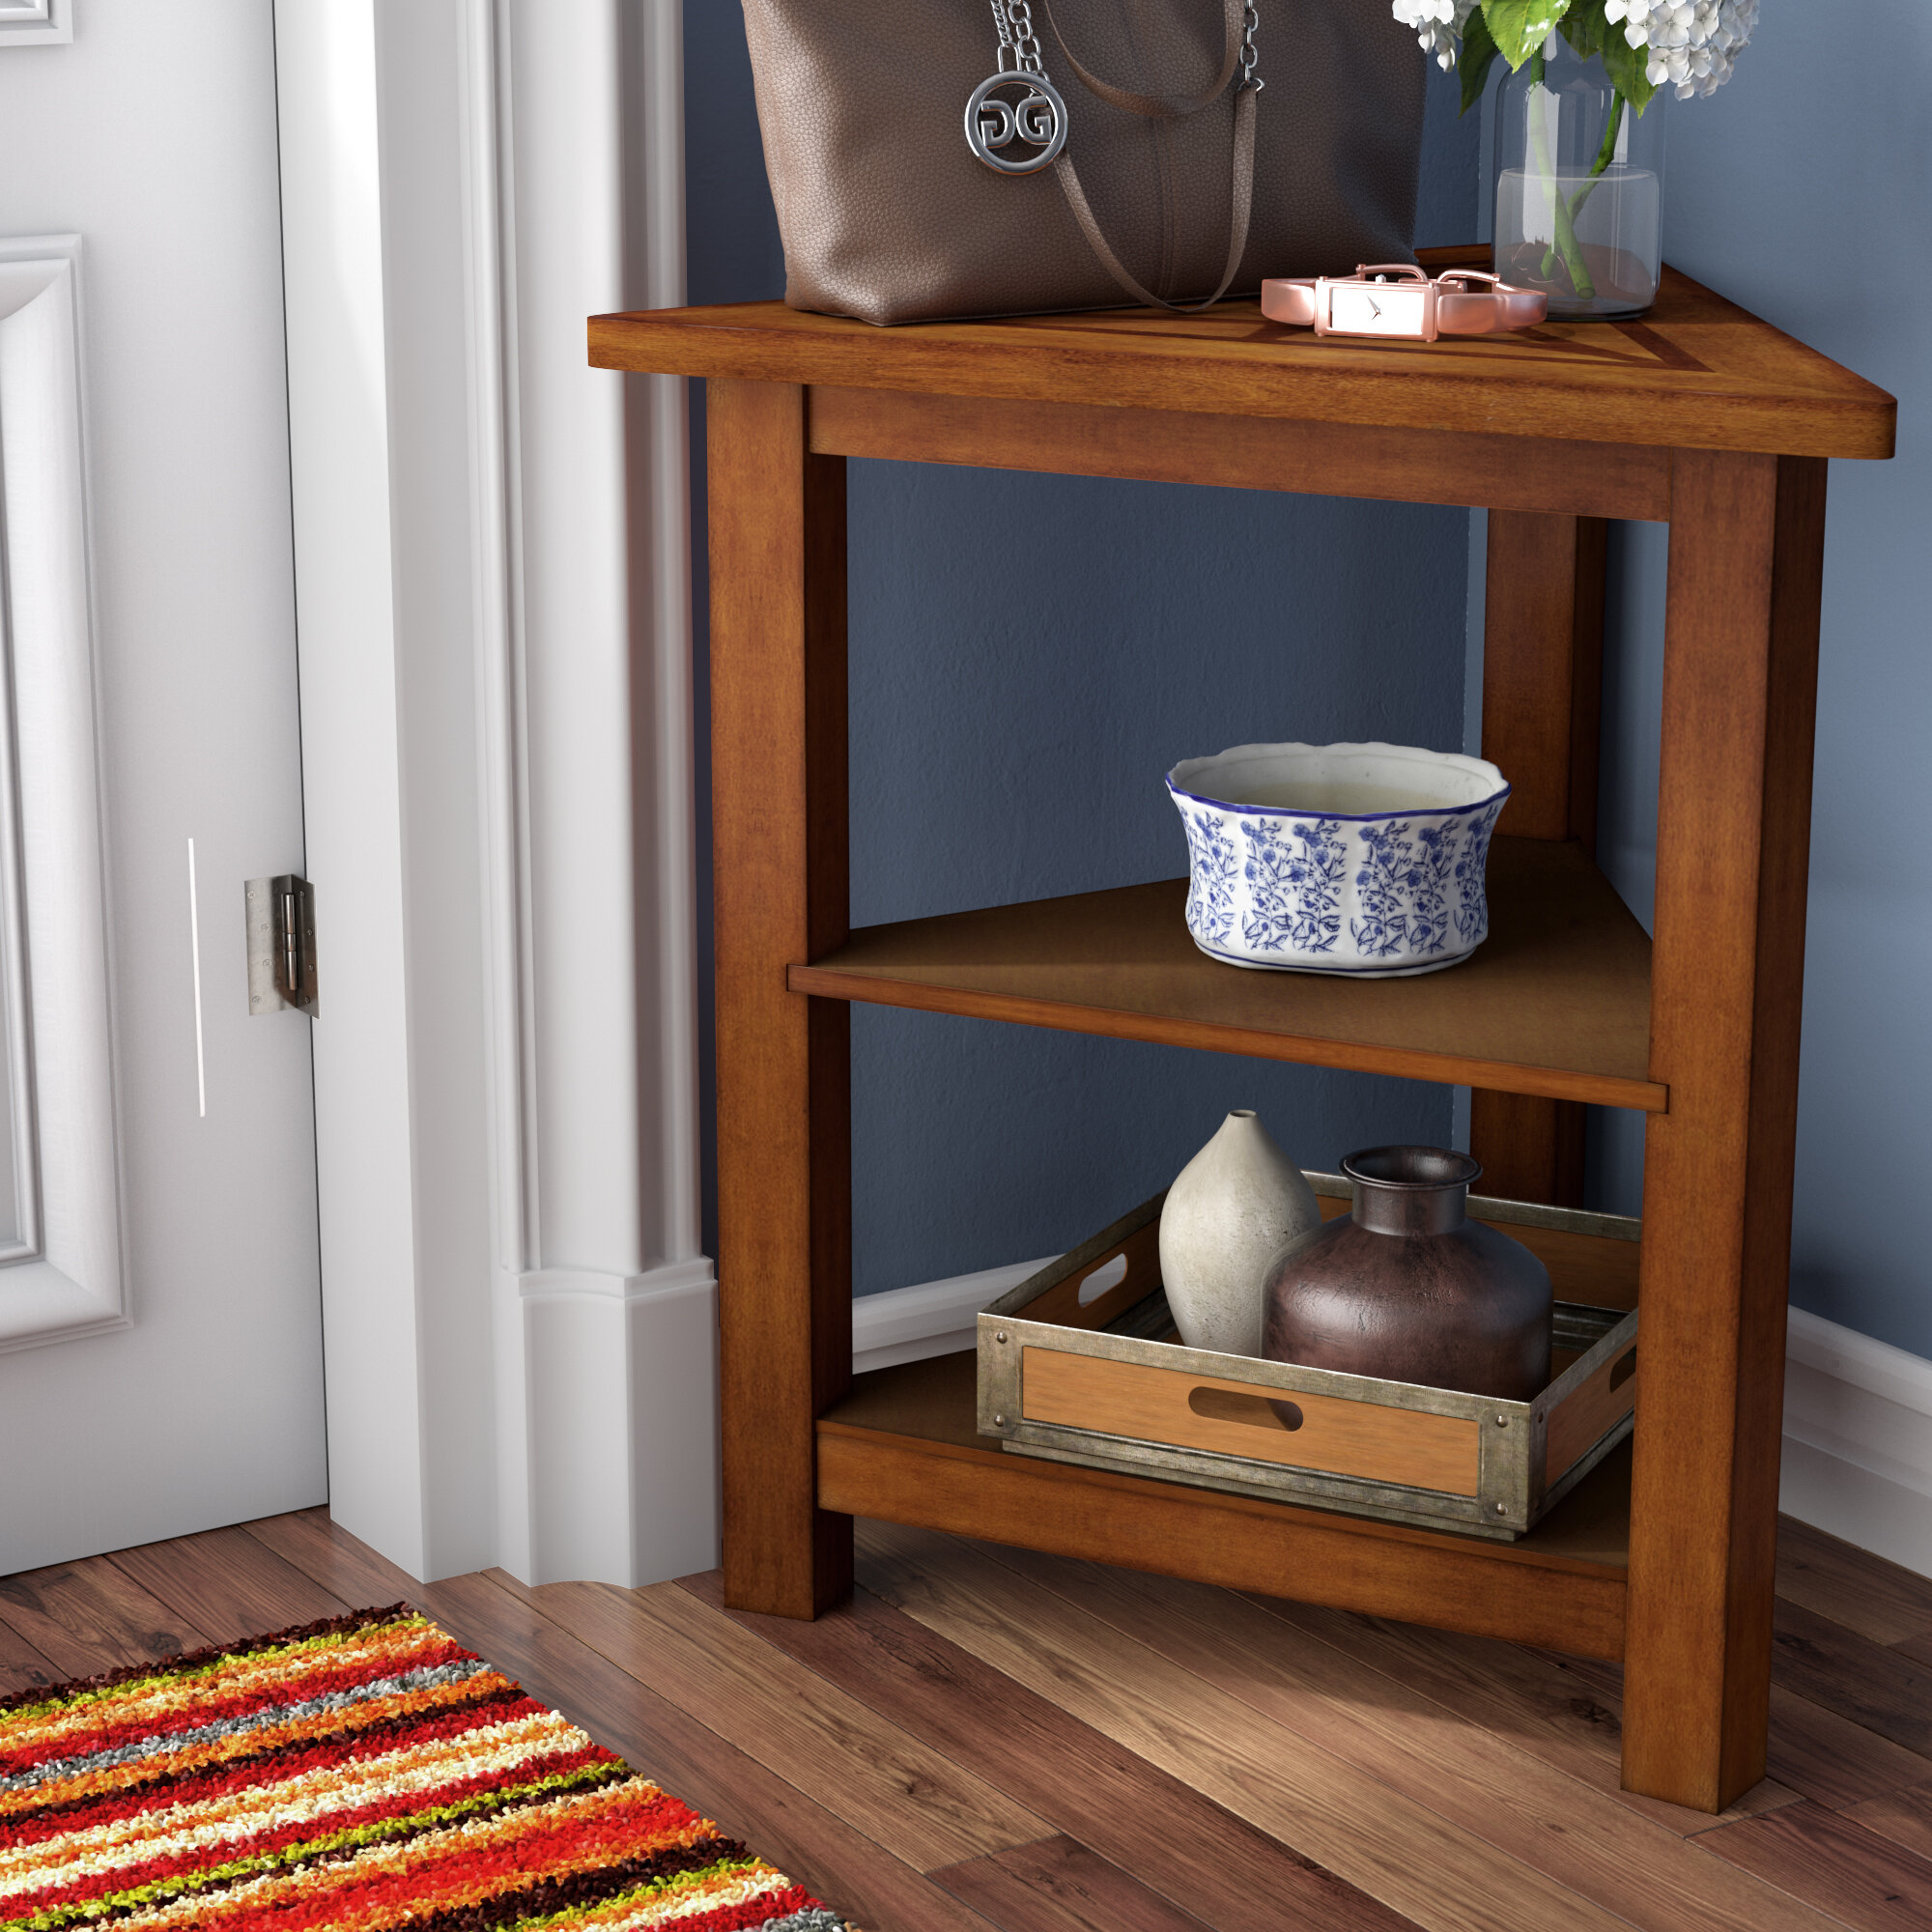 Attrayant Red Barrel Studio Heartwood Triangle End Table U0026 Reviews | Wayfair